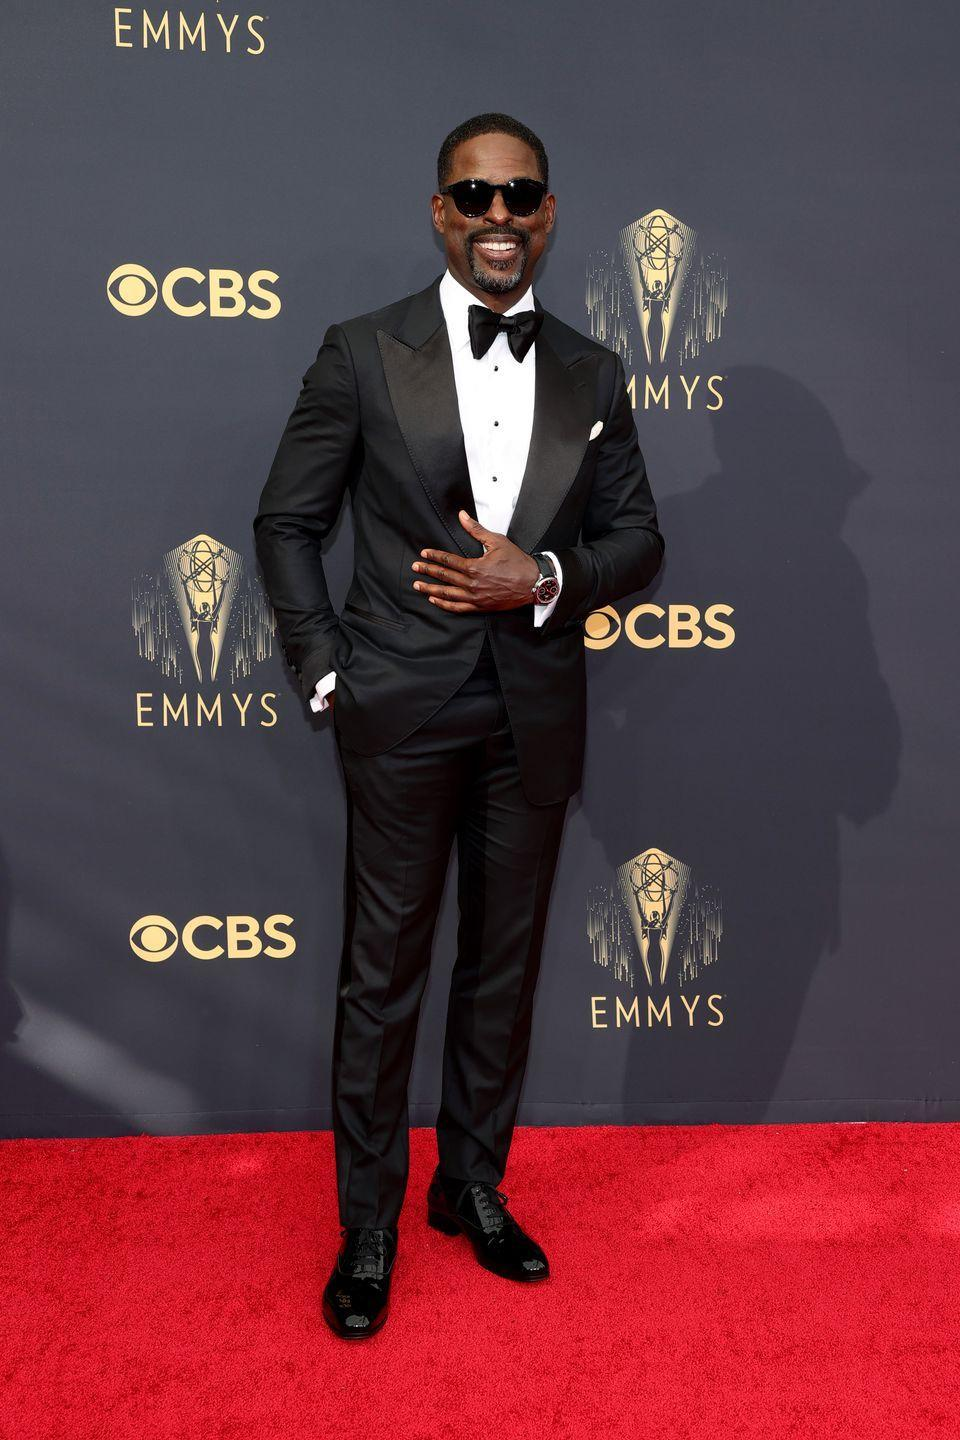 <p>The tuxedo is spot-on, but two key accessories—the sunglasses and the smile—take it over the top.</p><p><em>In Tom Ford and an IWC watch</em></p>